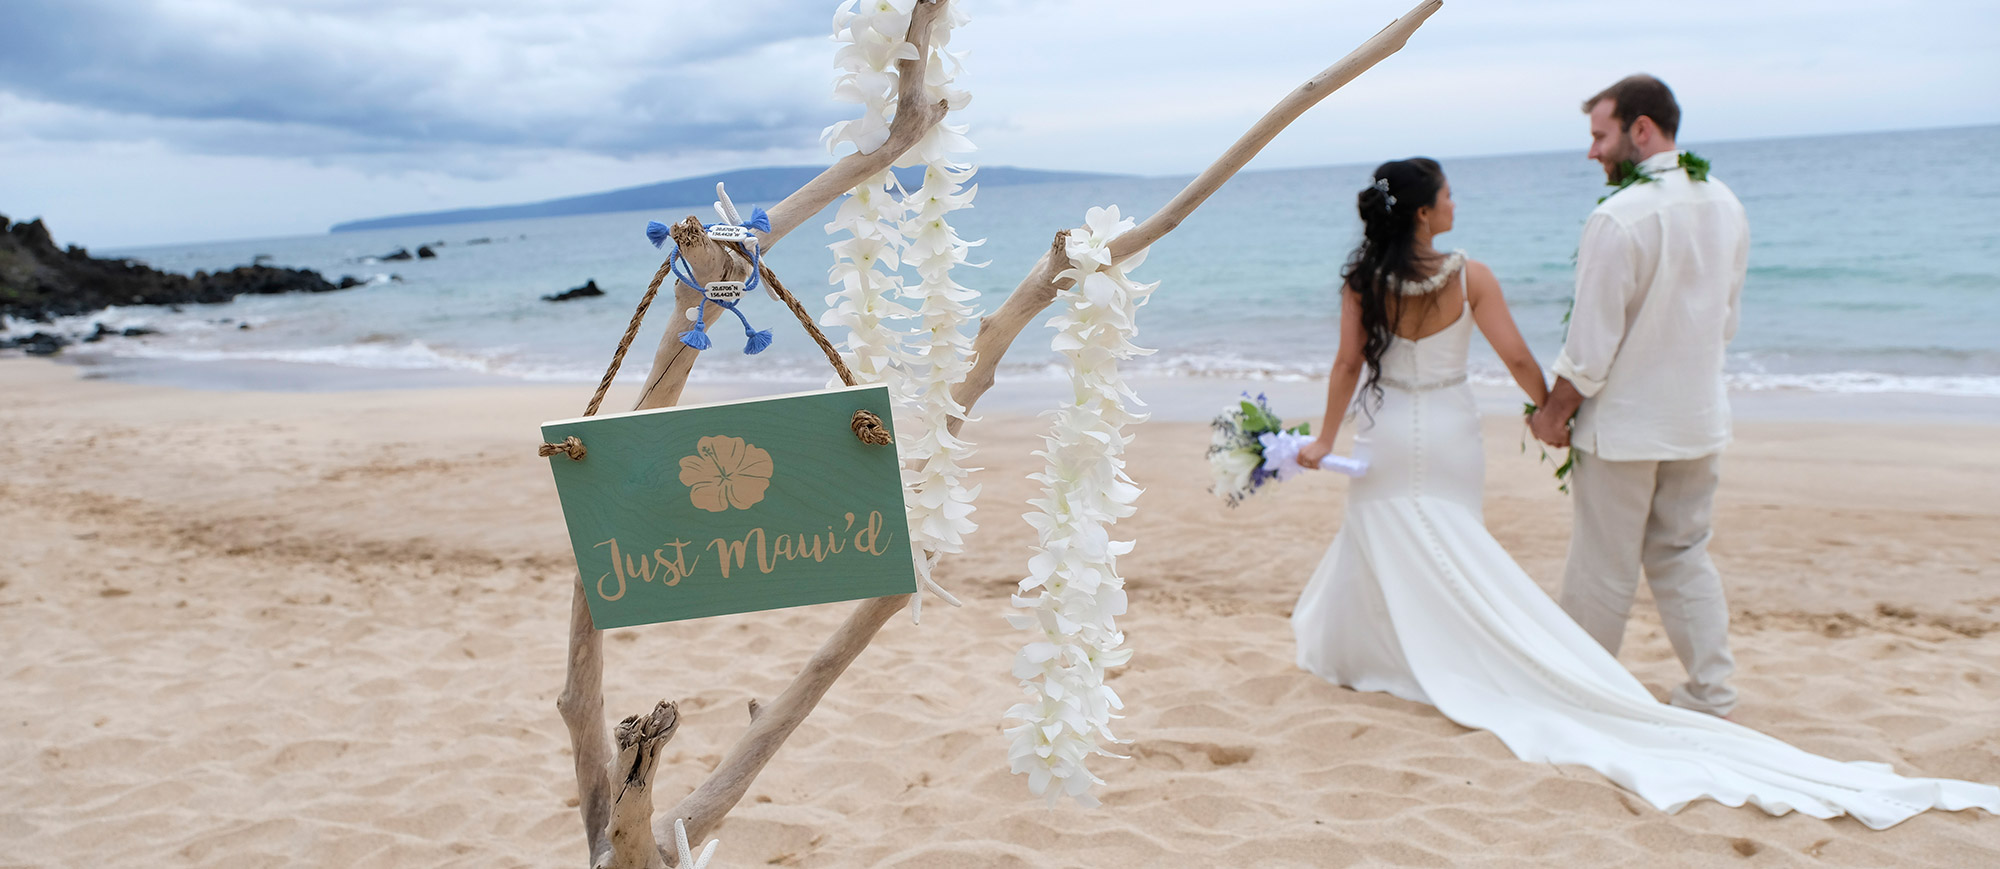 maui weddings home6 - Cheap Maui Weddings